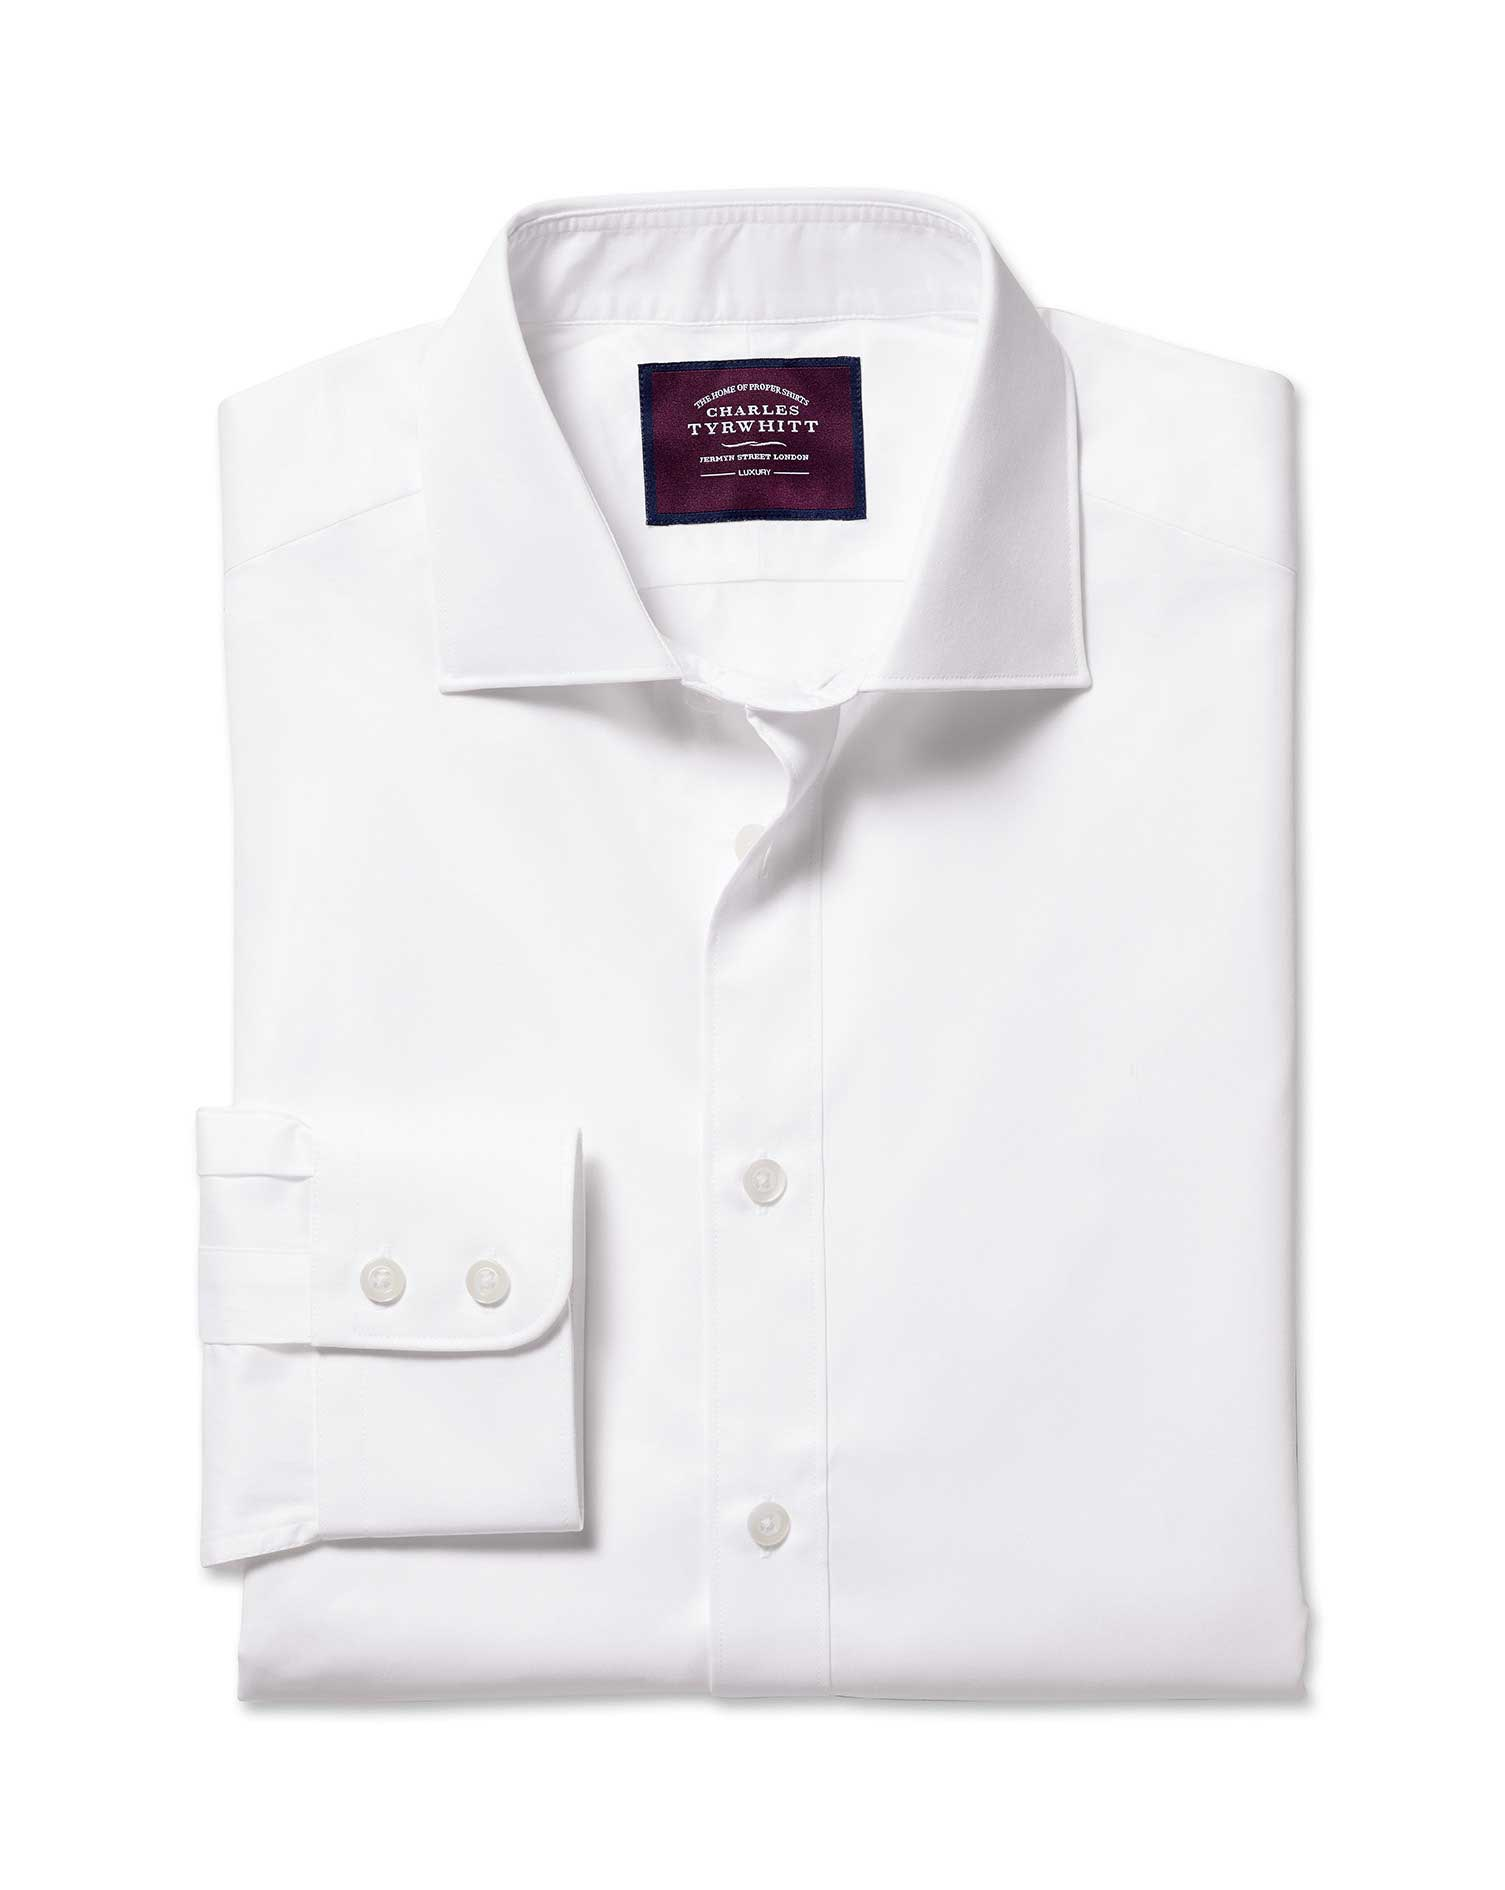 Extra Slim Fit Semi-Cutaway Luxury Twill White Egyptian Cotton Formal Shirt Single Cuff Size 16.5/34